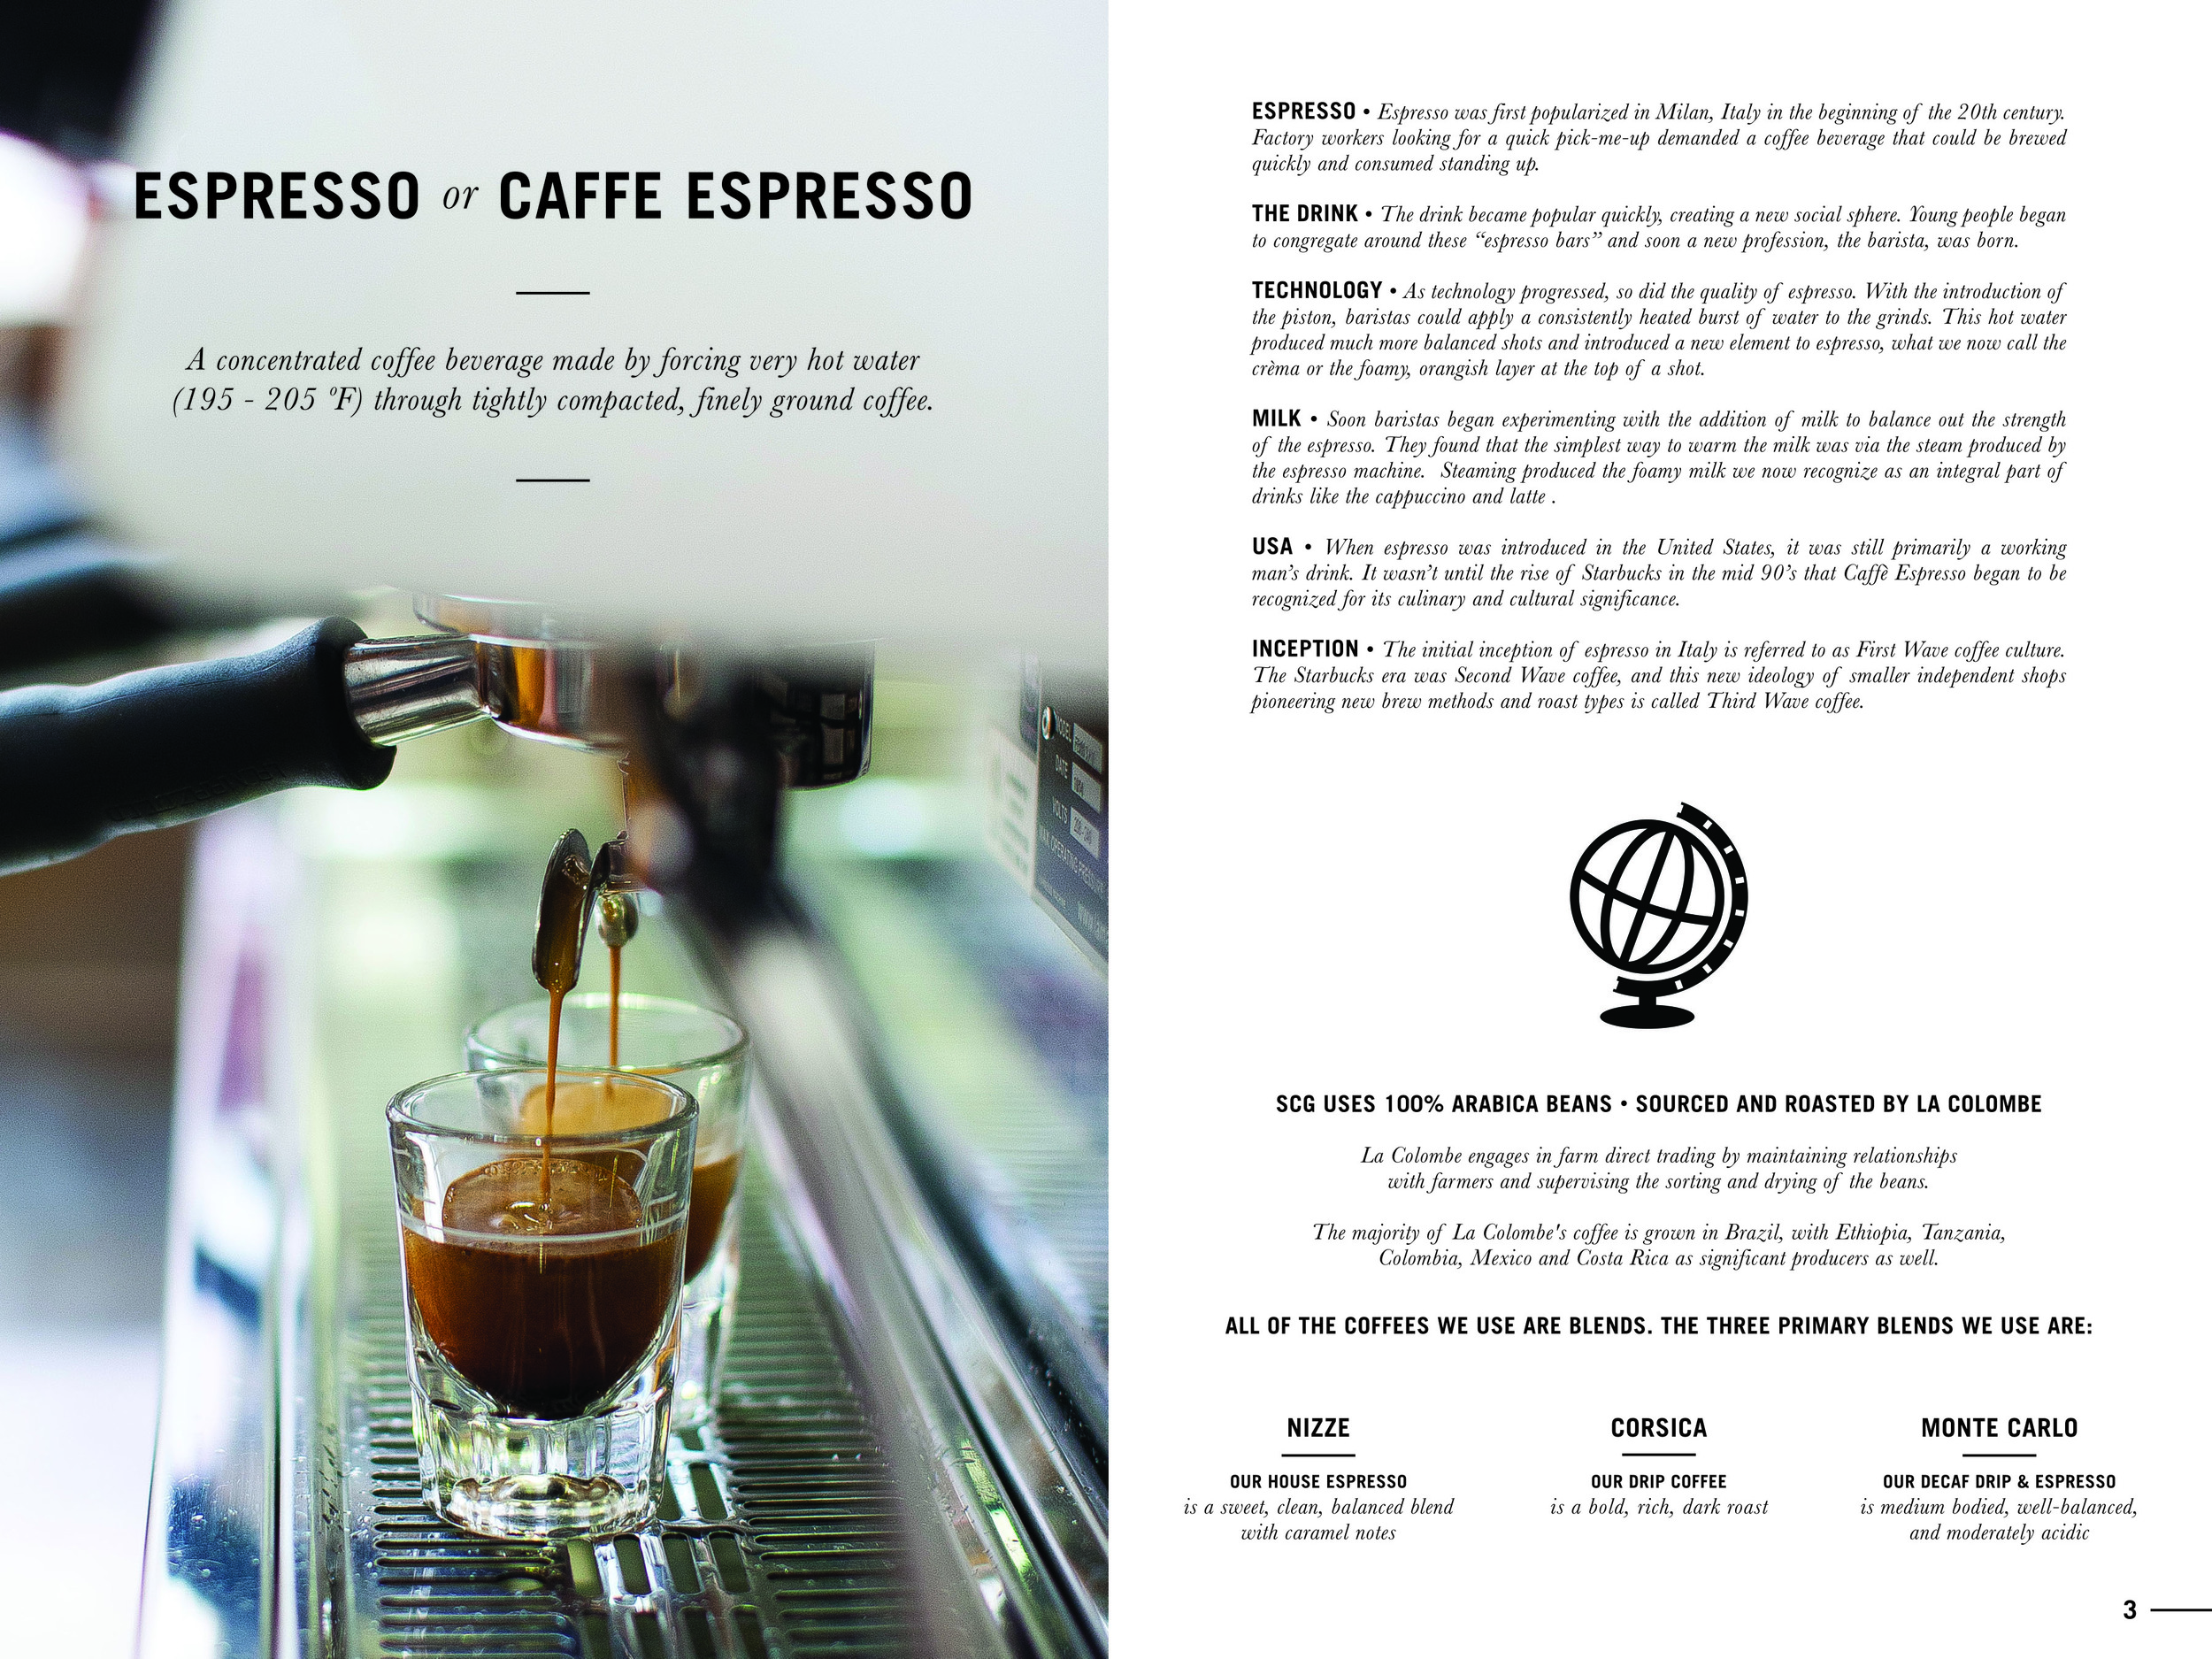 150806_coffeemanual_final_spreads-3.jpg